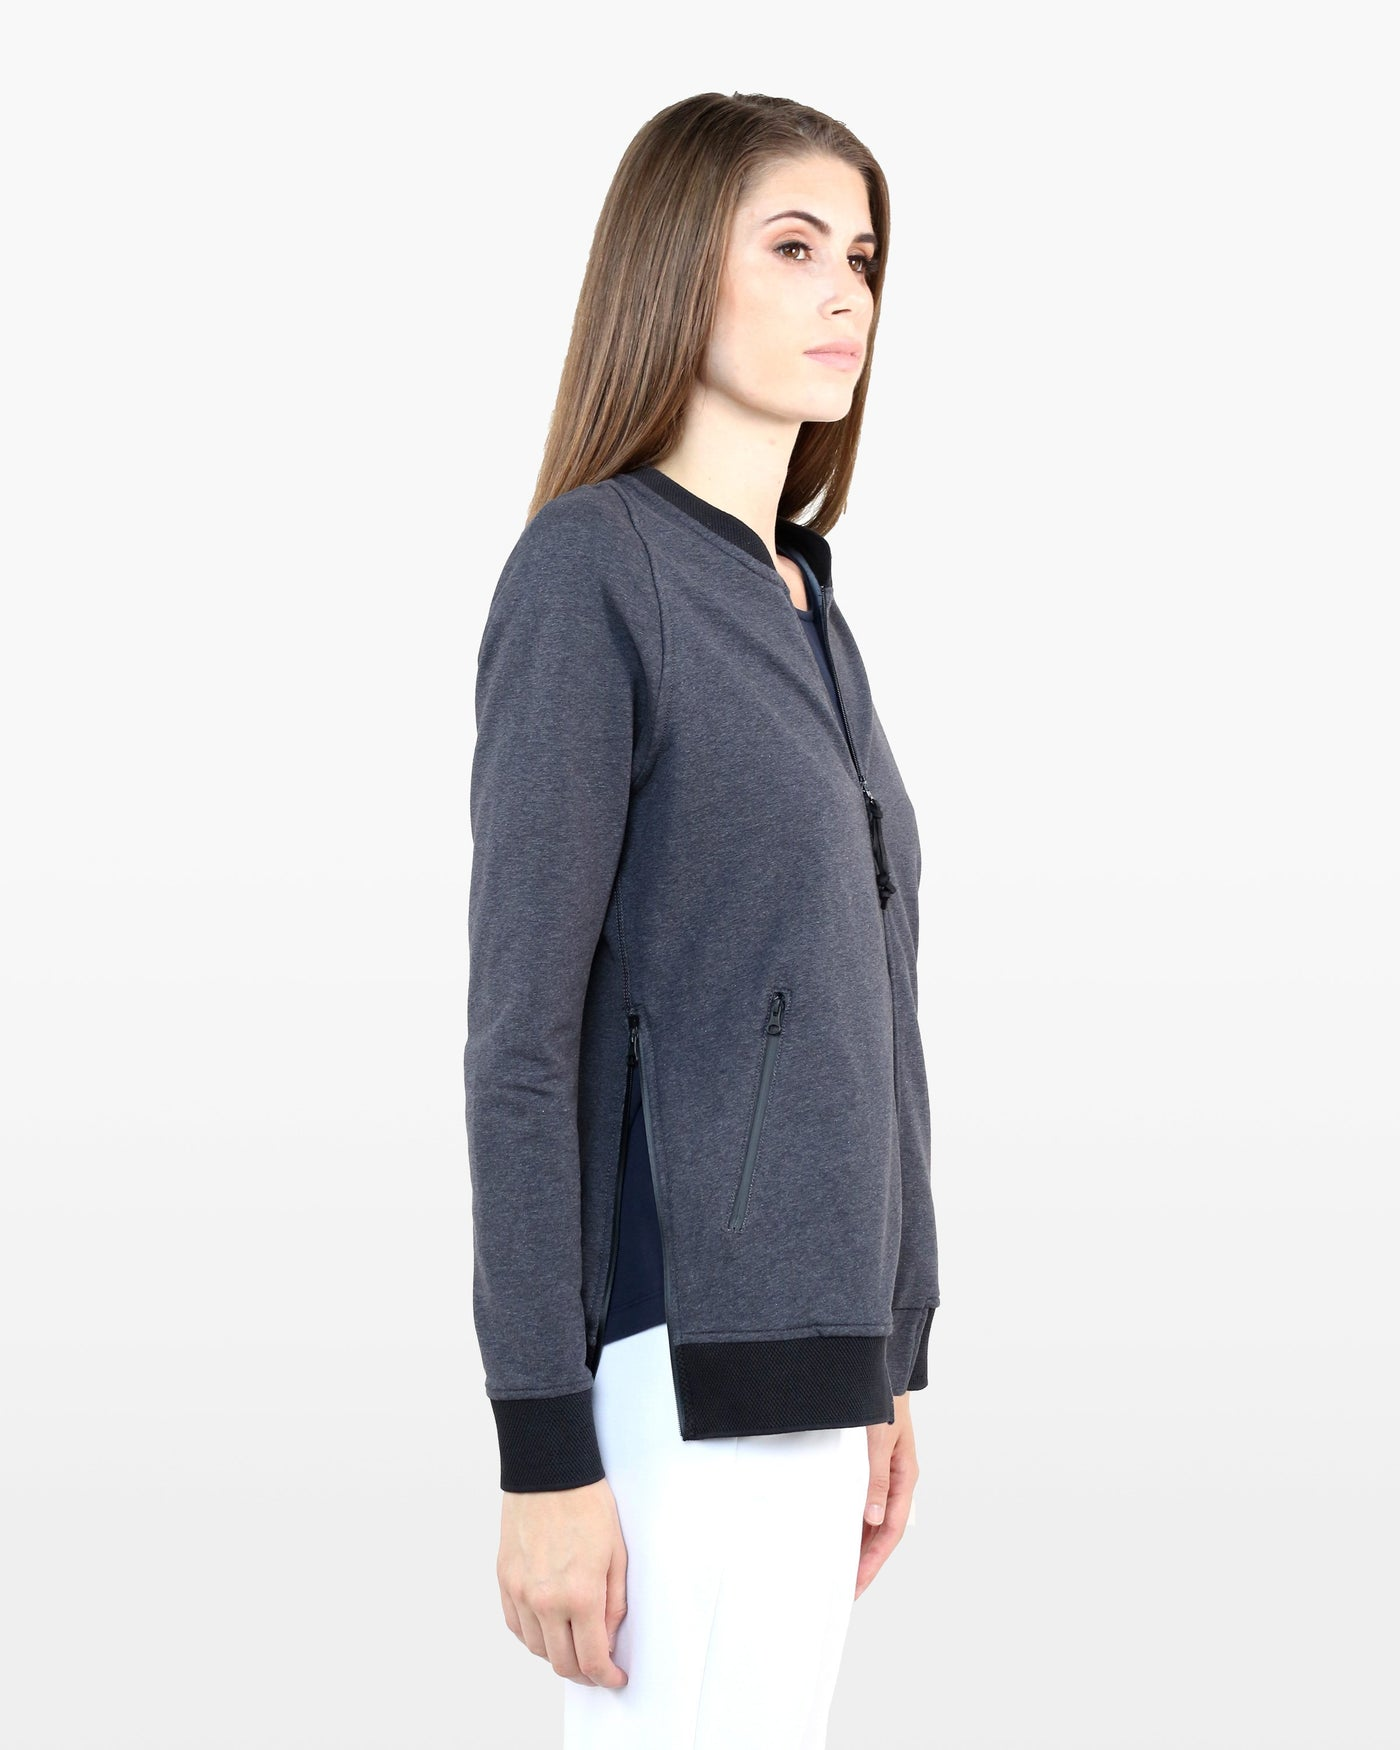 Nye Bomber Jacket DTT in charcoal